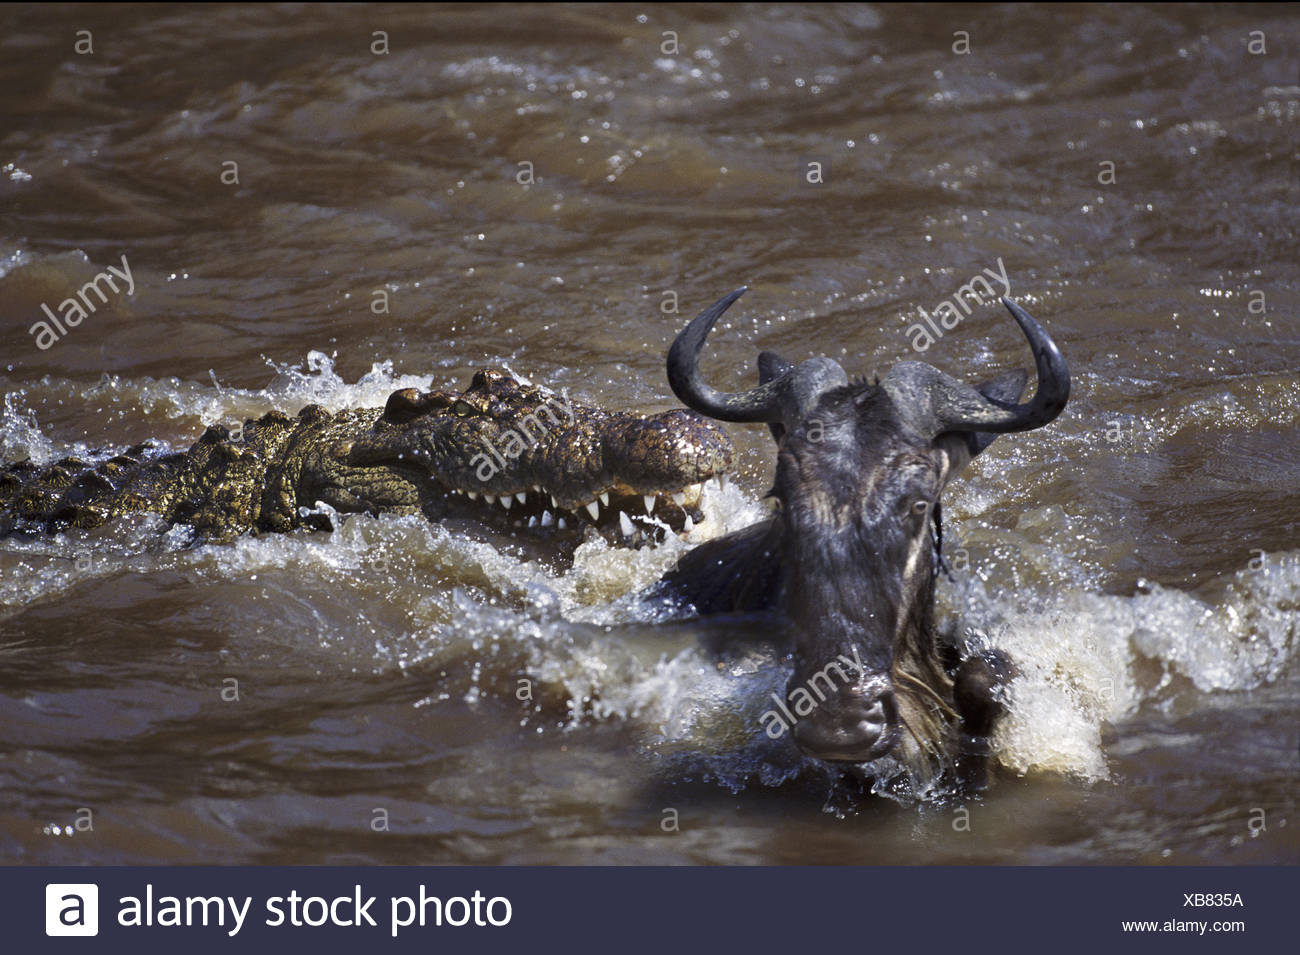 Crocodile attack on wildebeest Mara River Africa - Stock Image